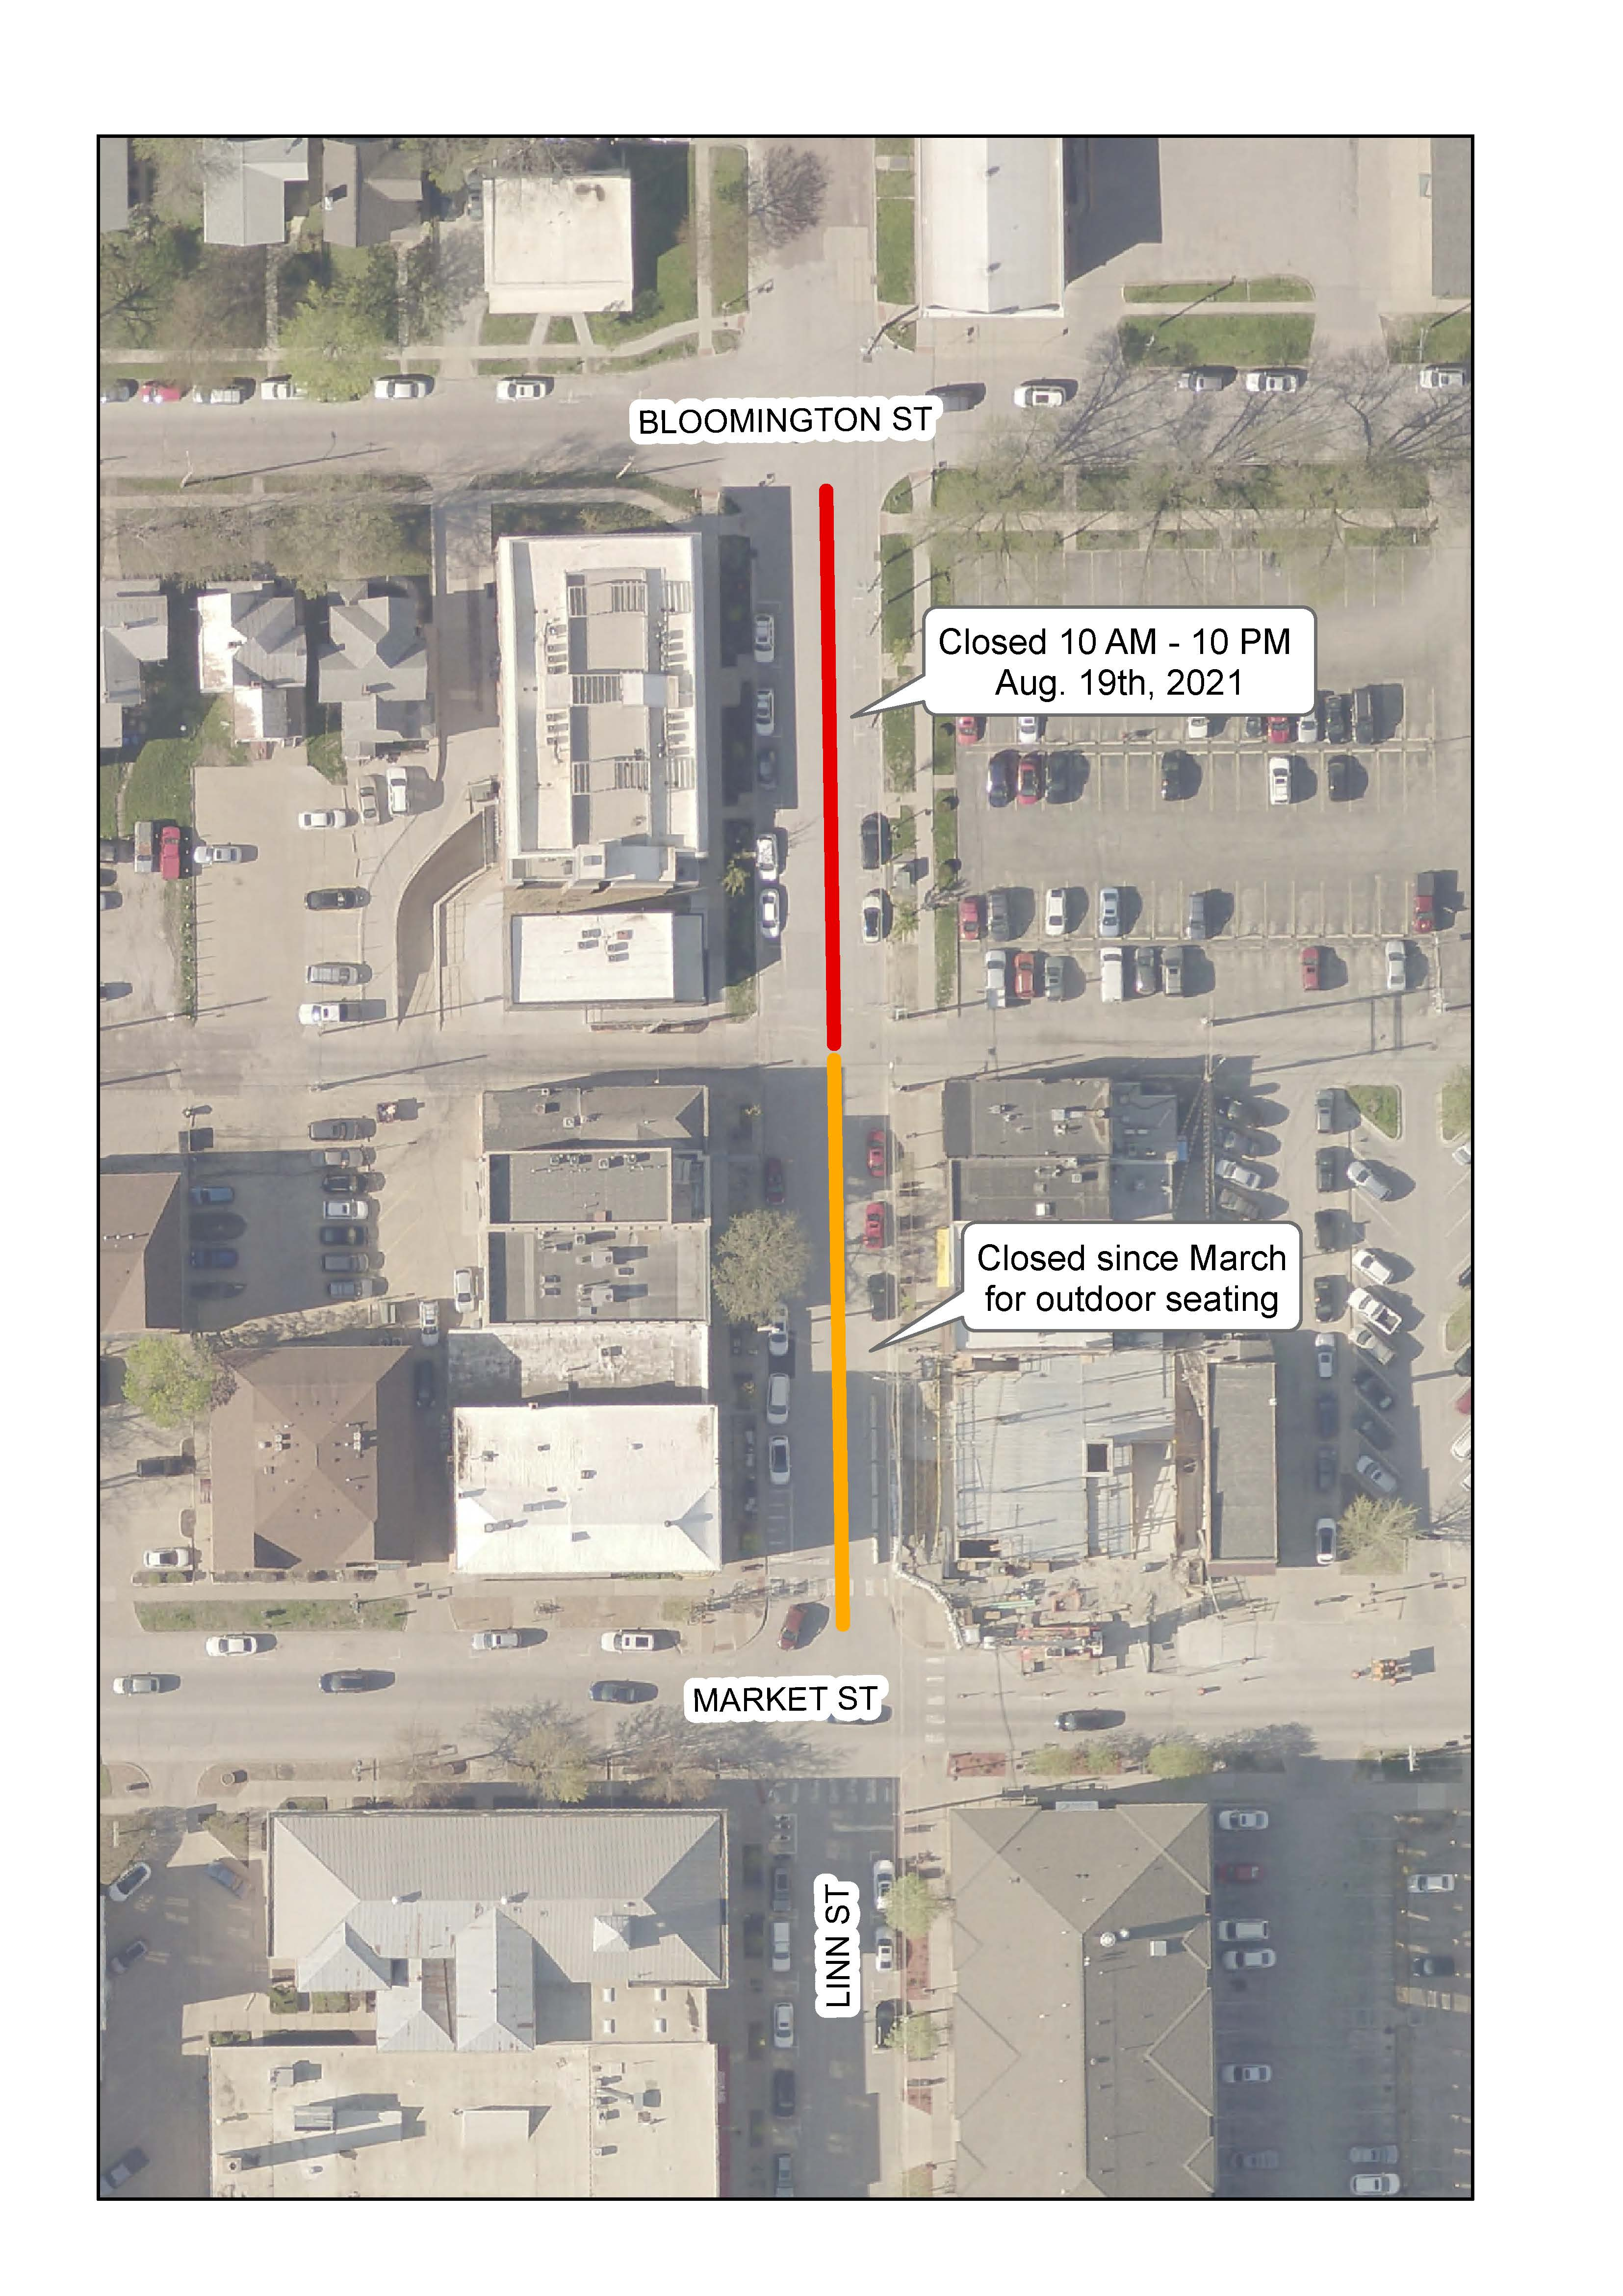 A map of the road closure needed for the Farm to Street Dinner on Aug. 18, 2021.